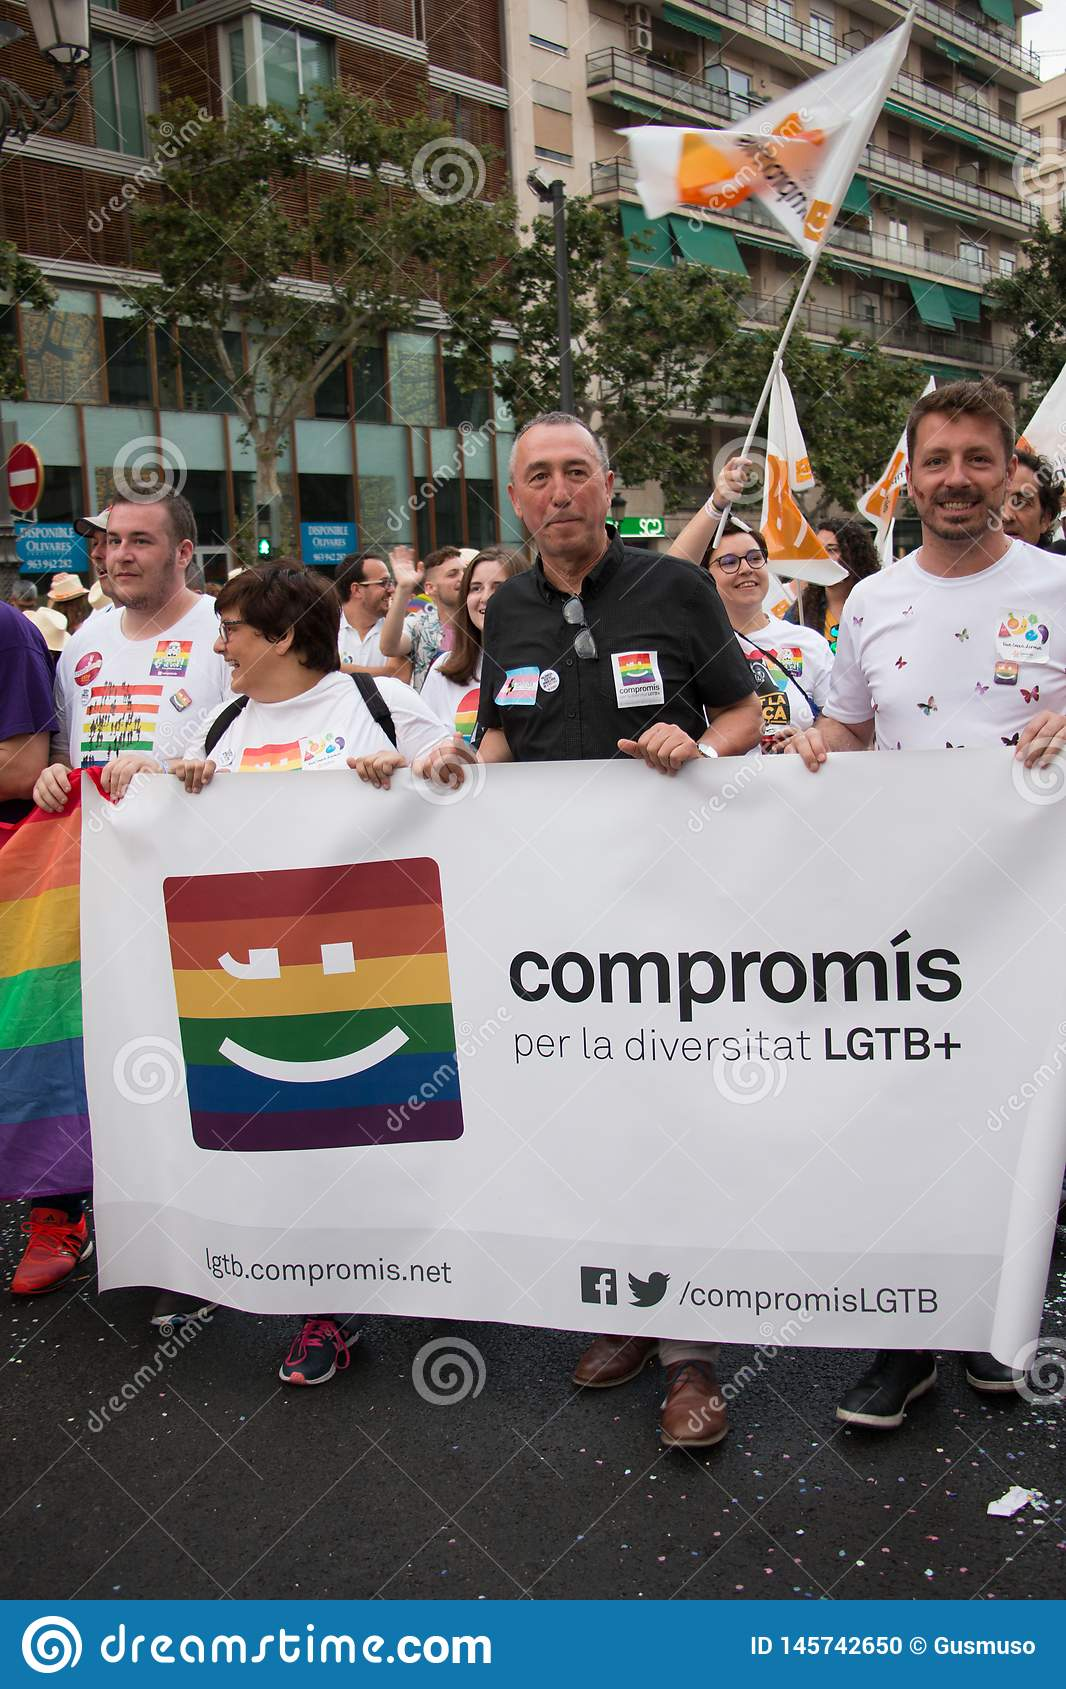 Valencia, Spain - June 16, 2018: Joan Valdoví and part of his political group Compromís with a banner on Gay Pride Day in Valenc